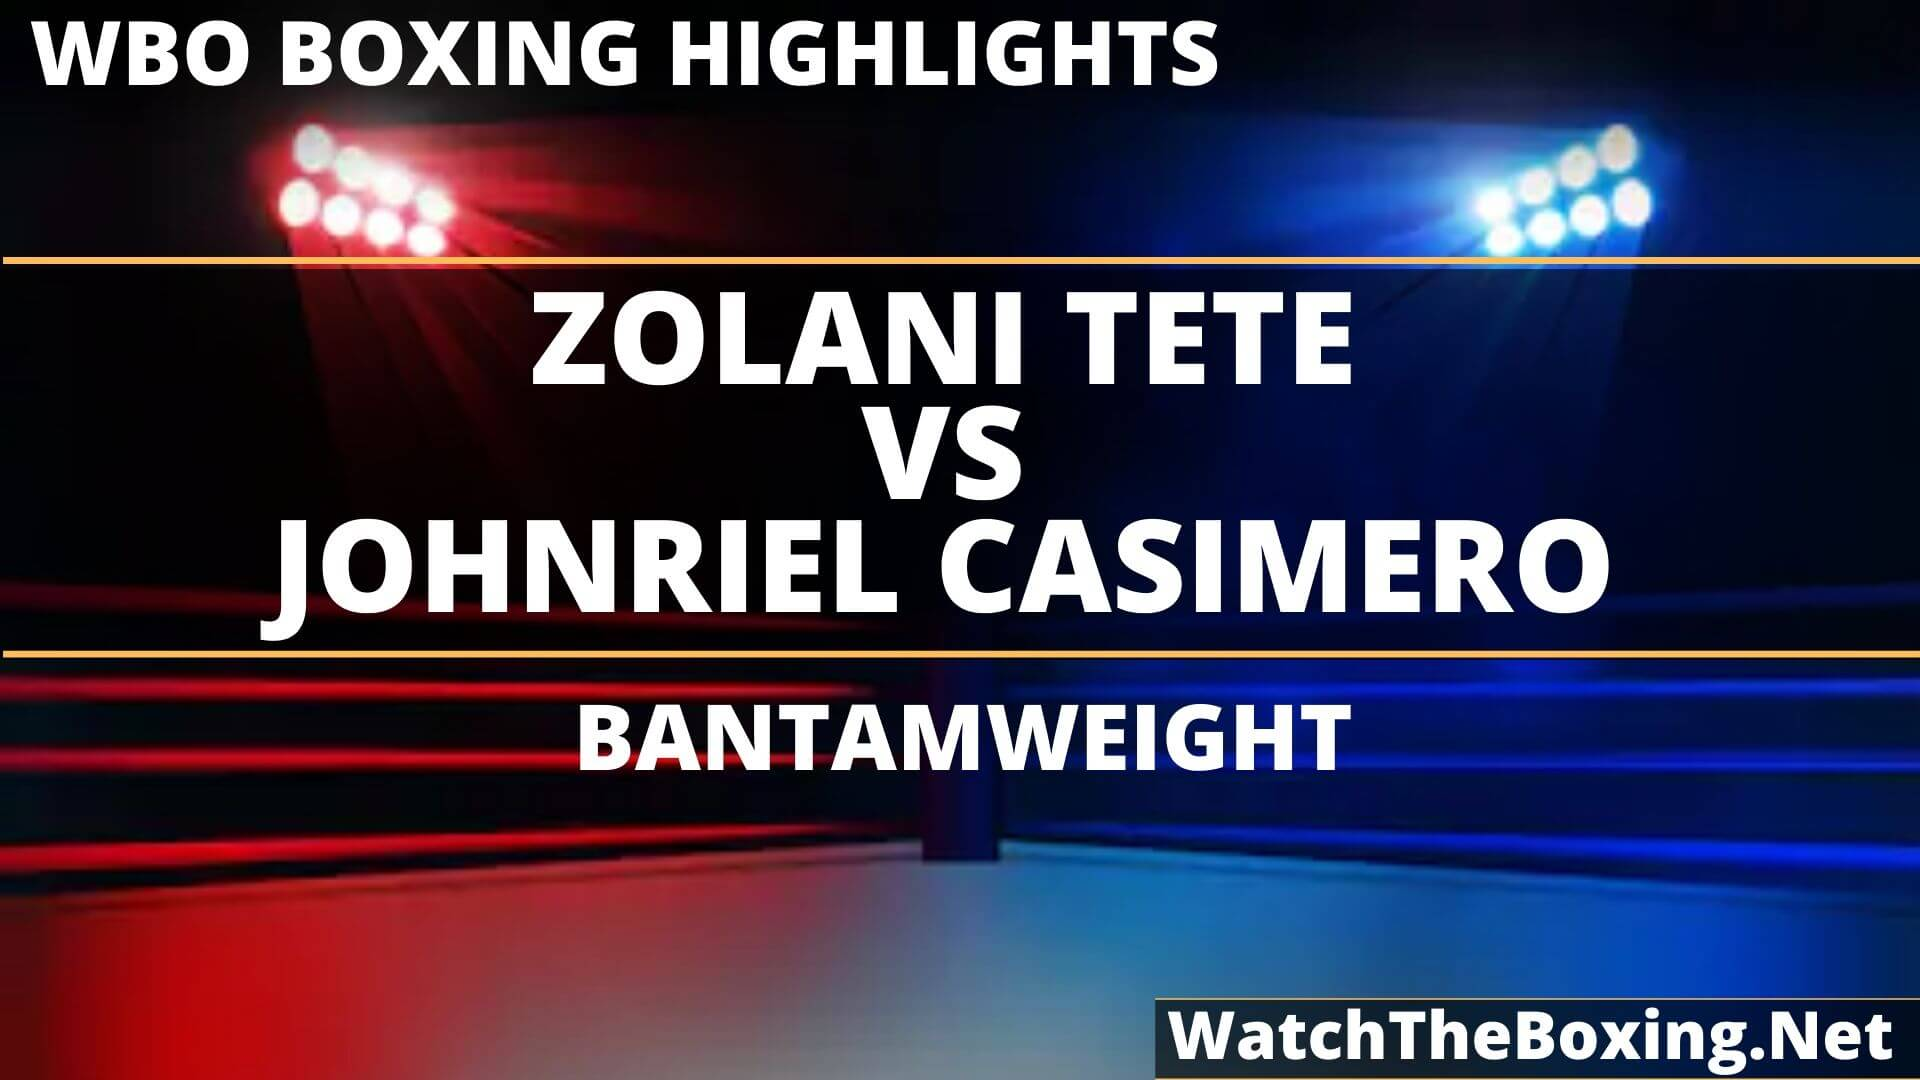 Zolani Tete Vs Johnriel Casimero Highlights 2019